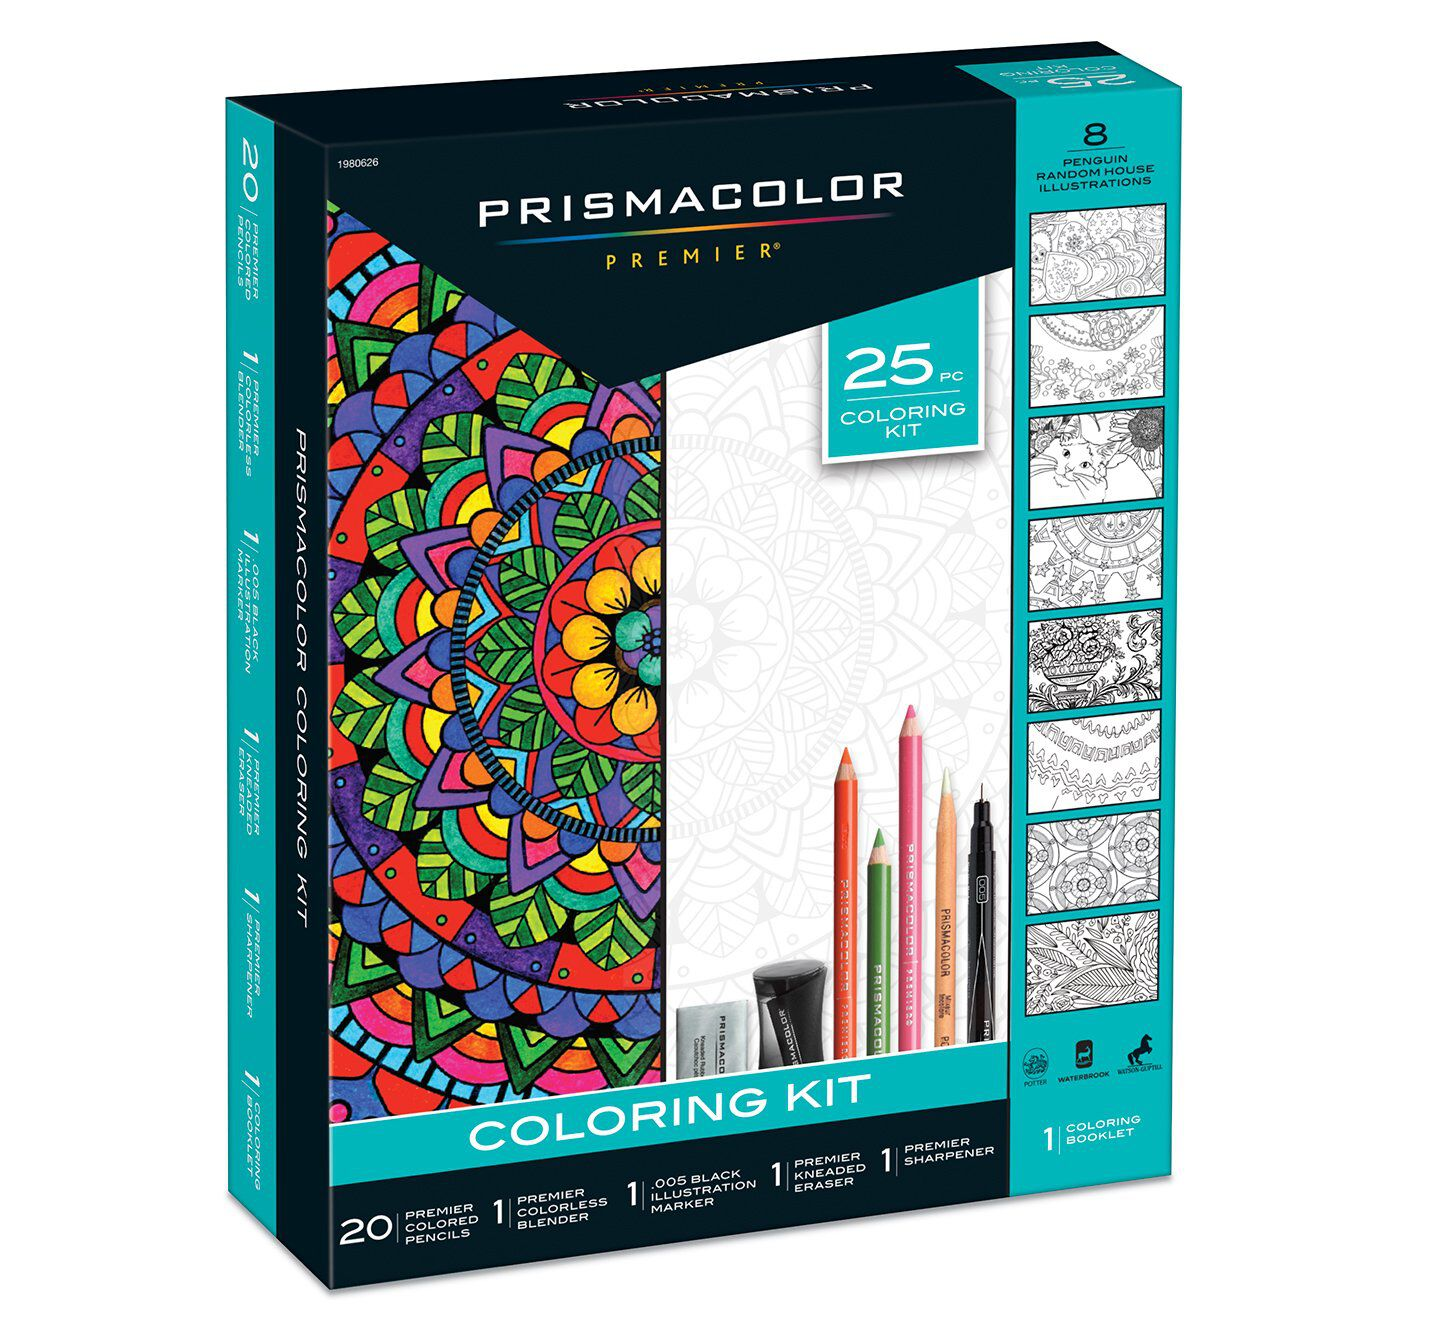 25 piece coloring kit